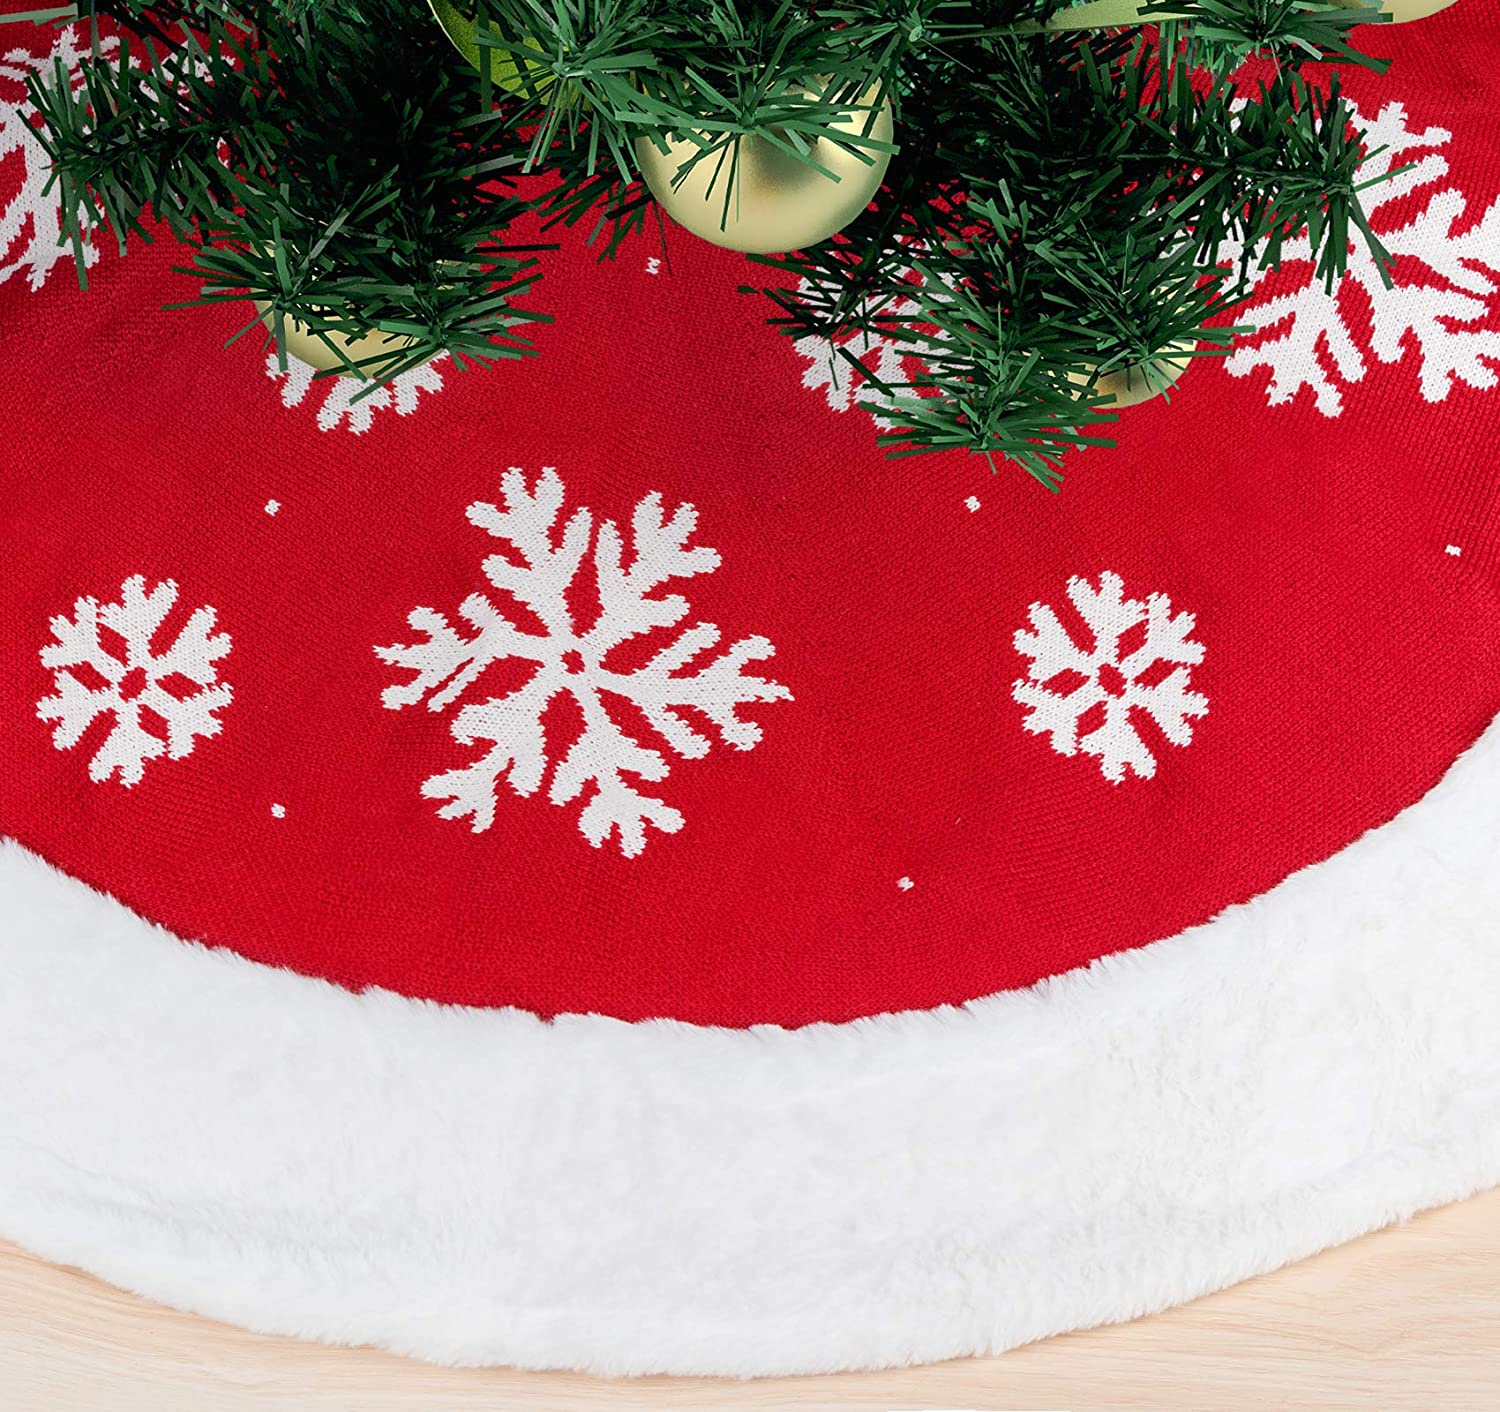 ABSOFINE Selling and selling Tampa Mall Snowflakes Christmas Knitted Tree Rustic 48 Inch Skirt